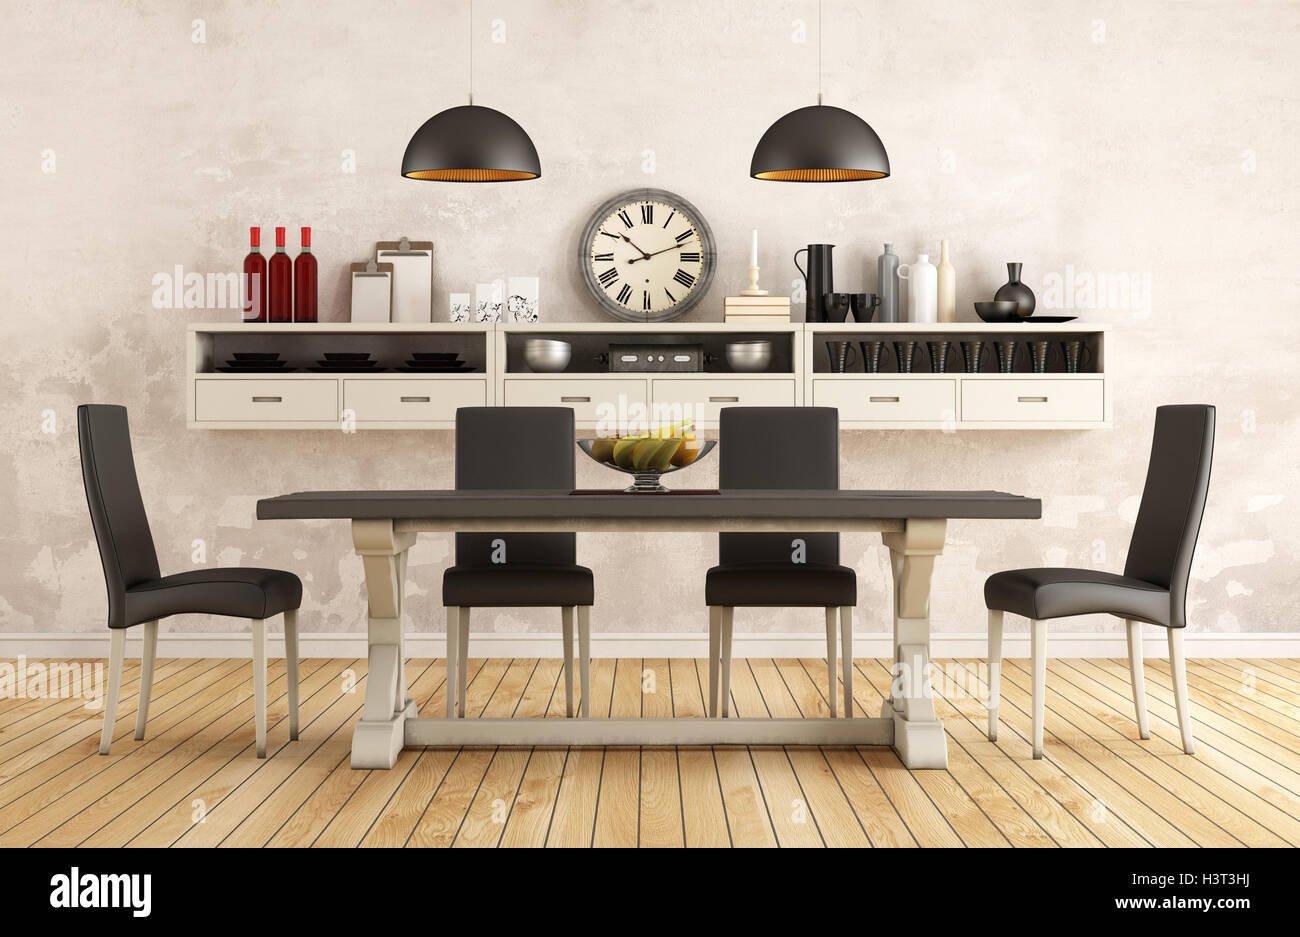 Miraculous Black And White Retro Dining Room With Old Table And Chairs Pabps2019 Chair Design Images Pabps2019Com